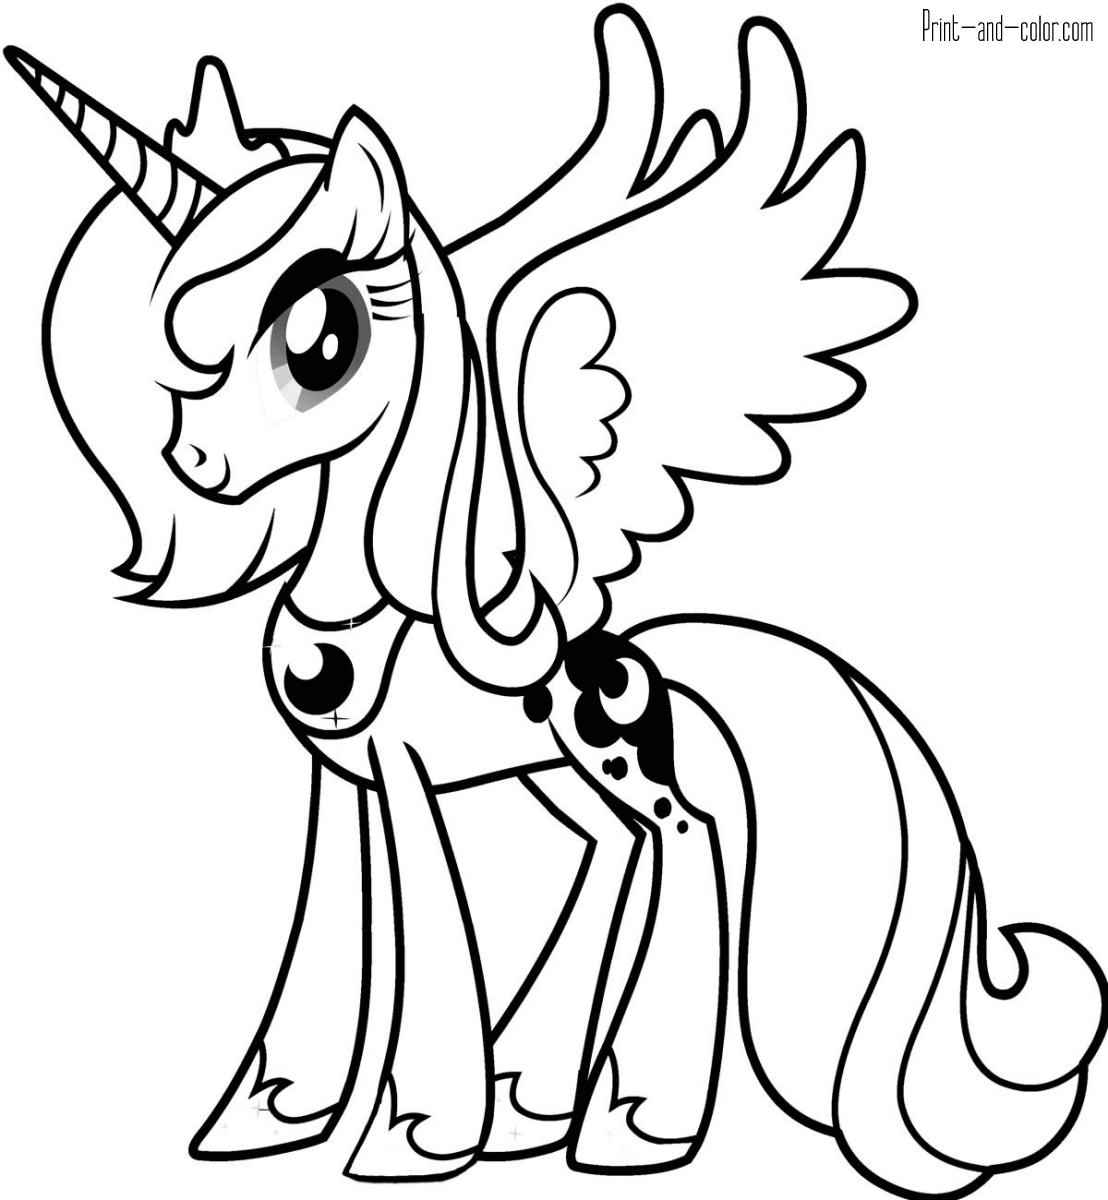 my little pony print out coloring pages my little pony coloring pages for girls print for free or print pony my pages coloring little out